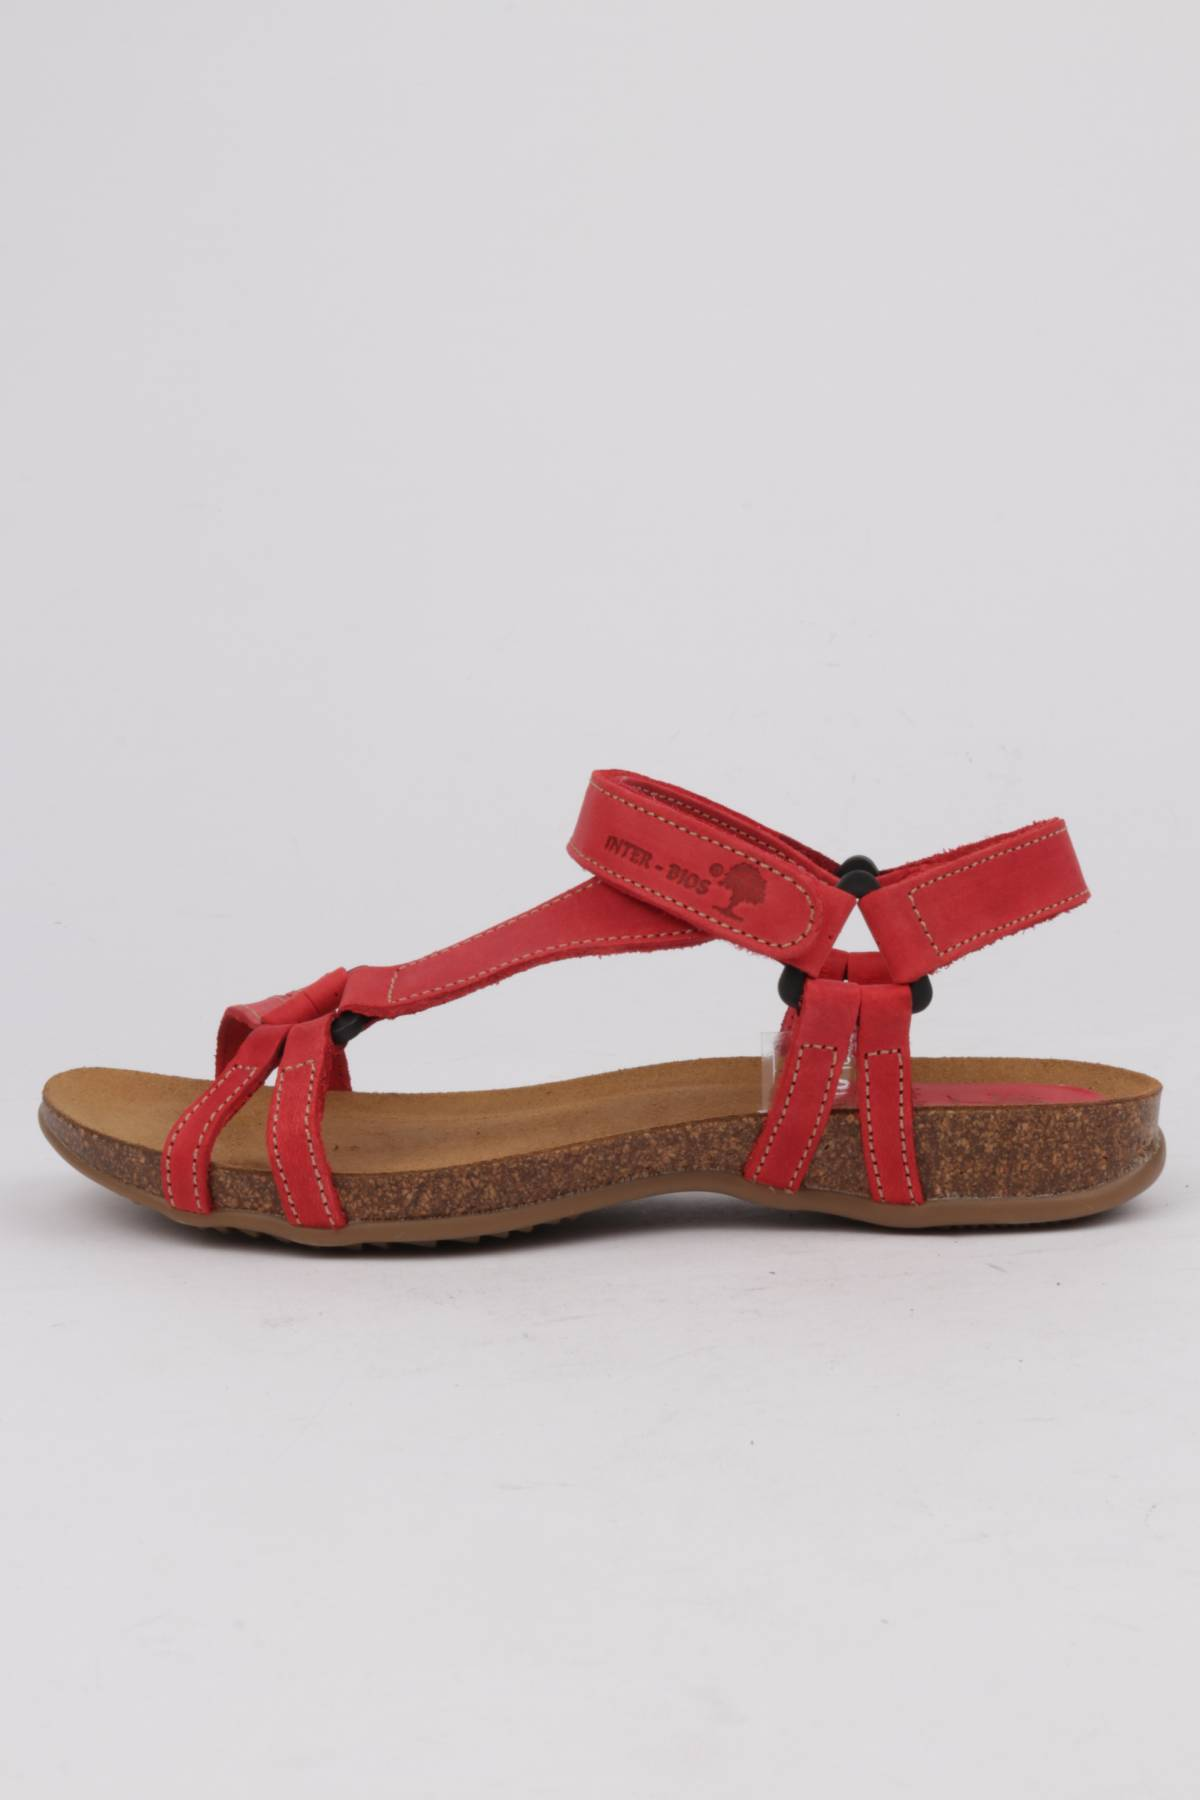 INTER BIOS flat sandals red leather